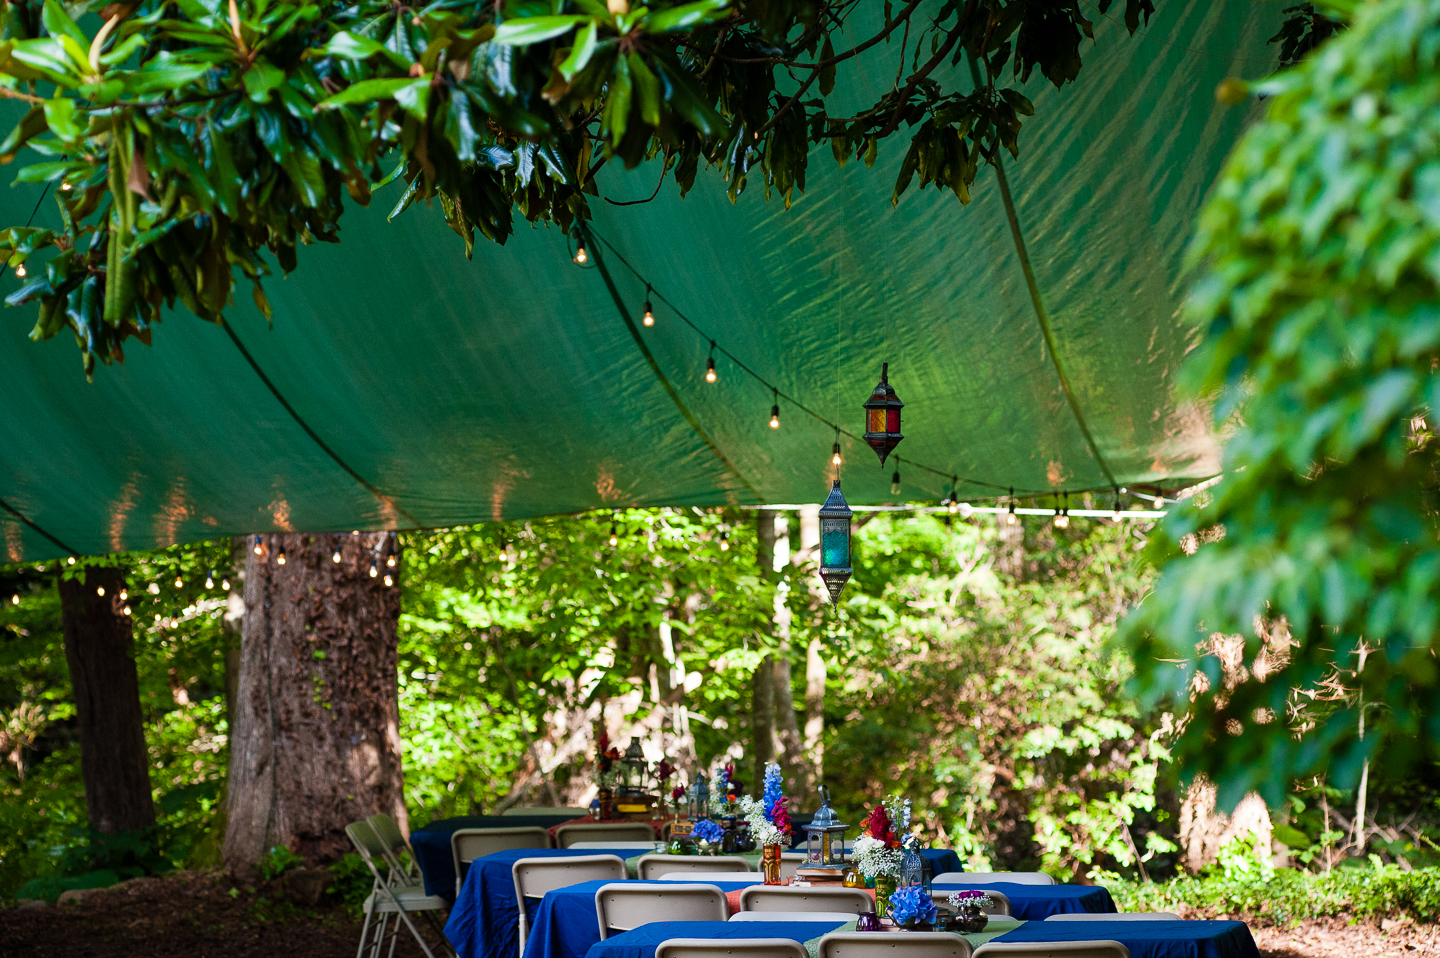 beautiful flowers adorned the bright blue table clothes which sat underneath hand strewn lanterns